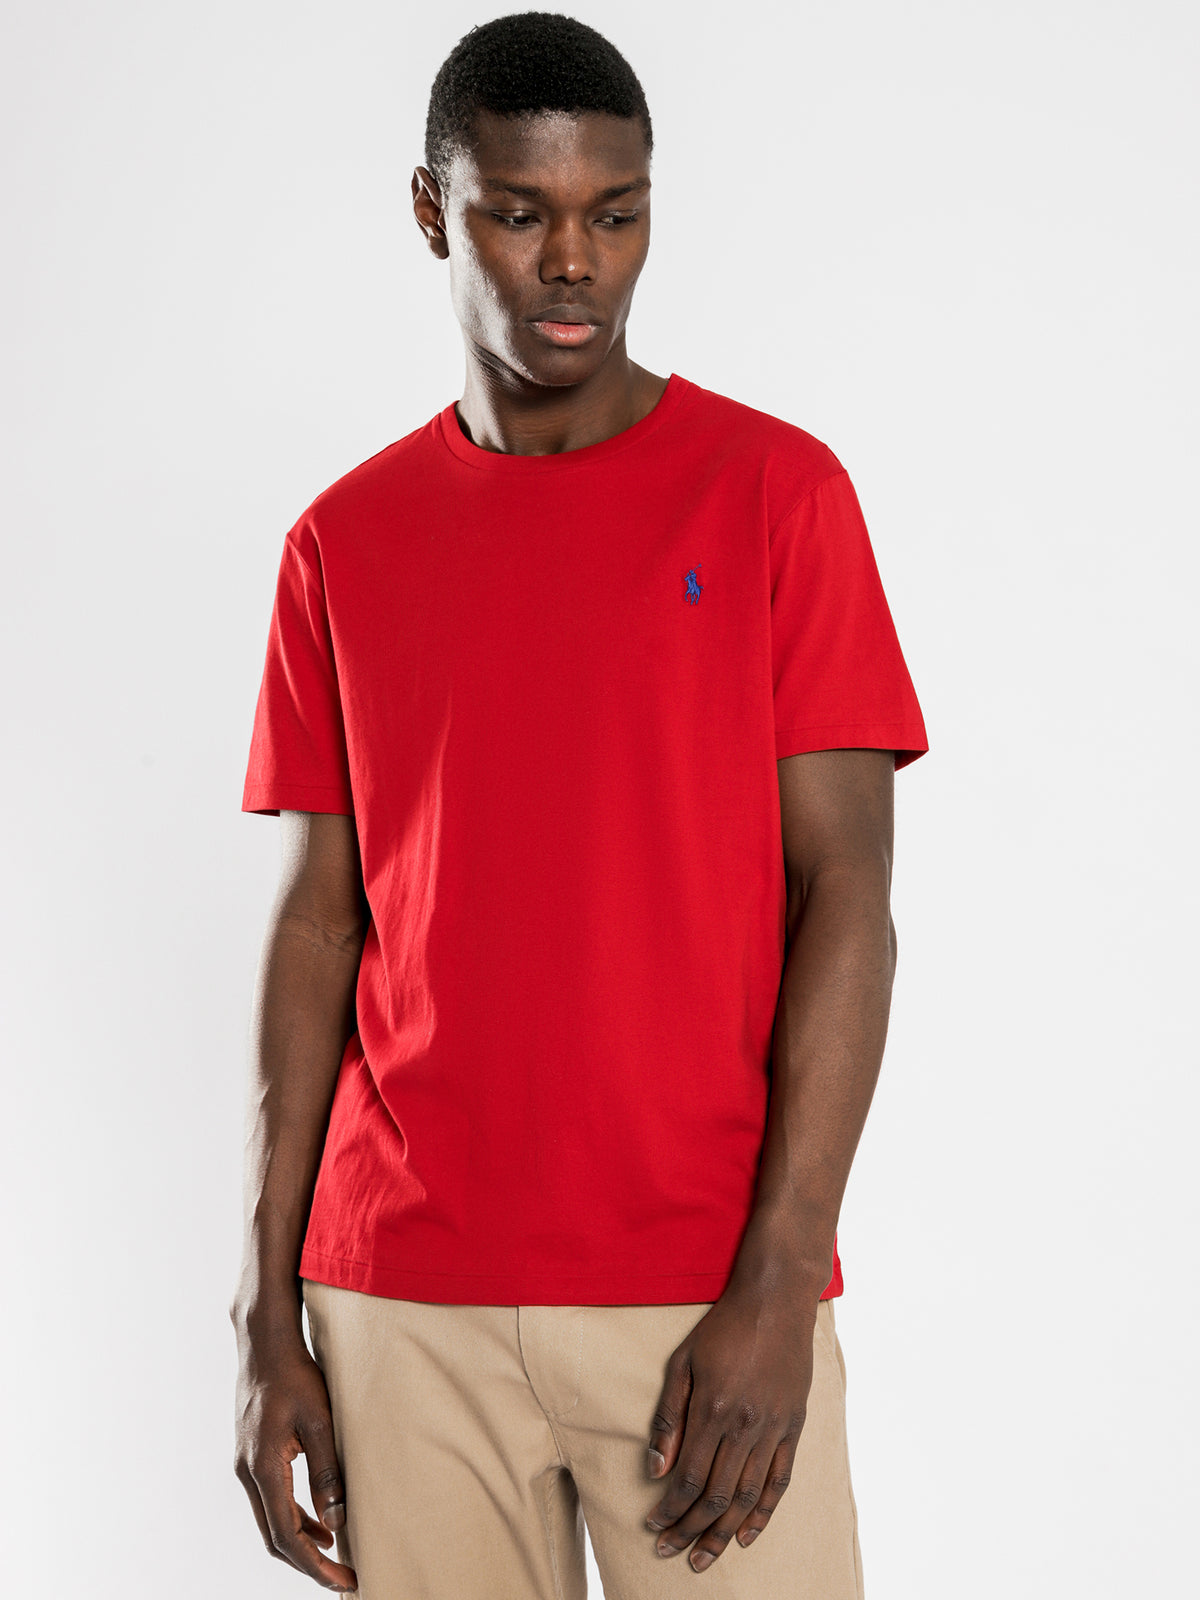 Polo Slim Fit T-Shirt in Red